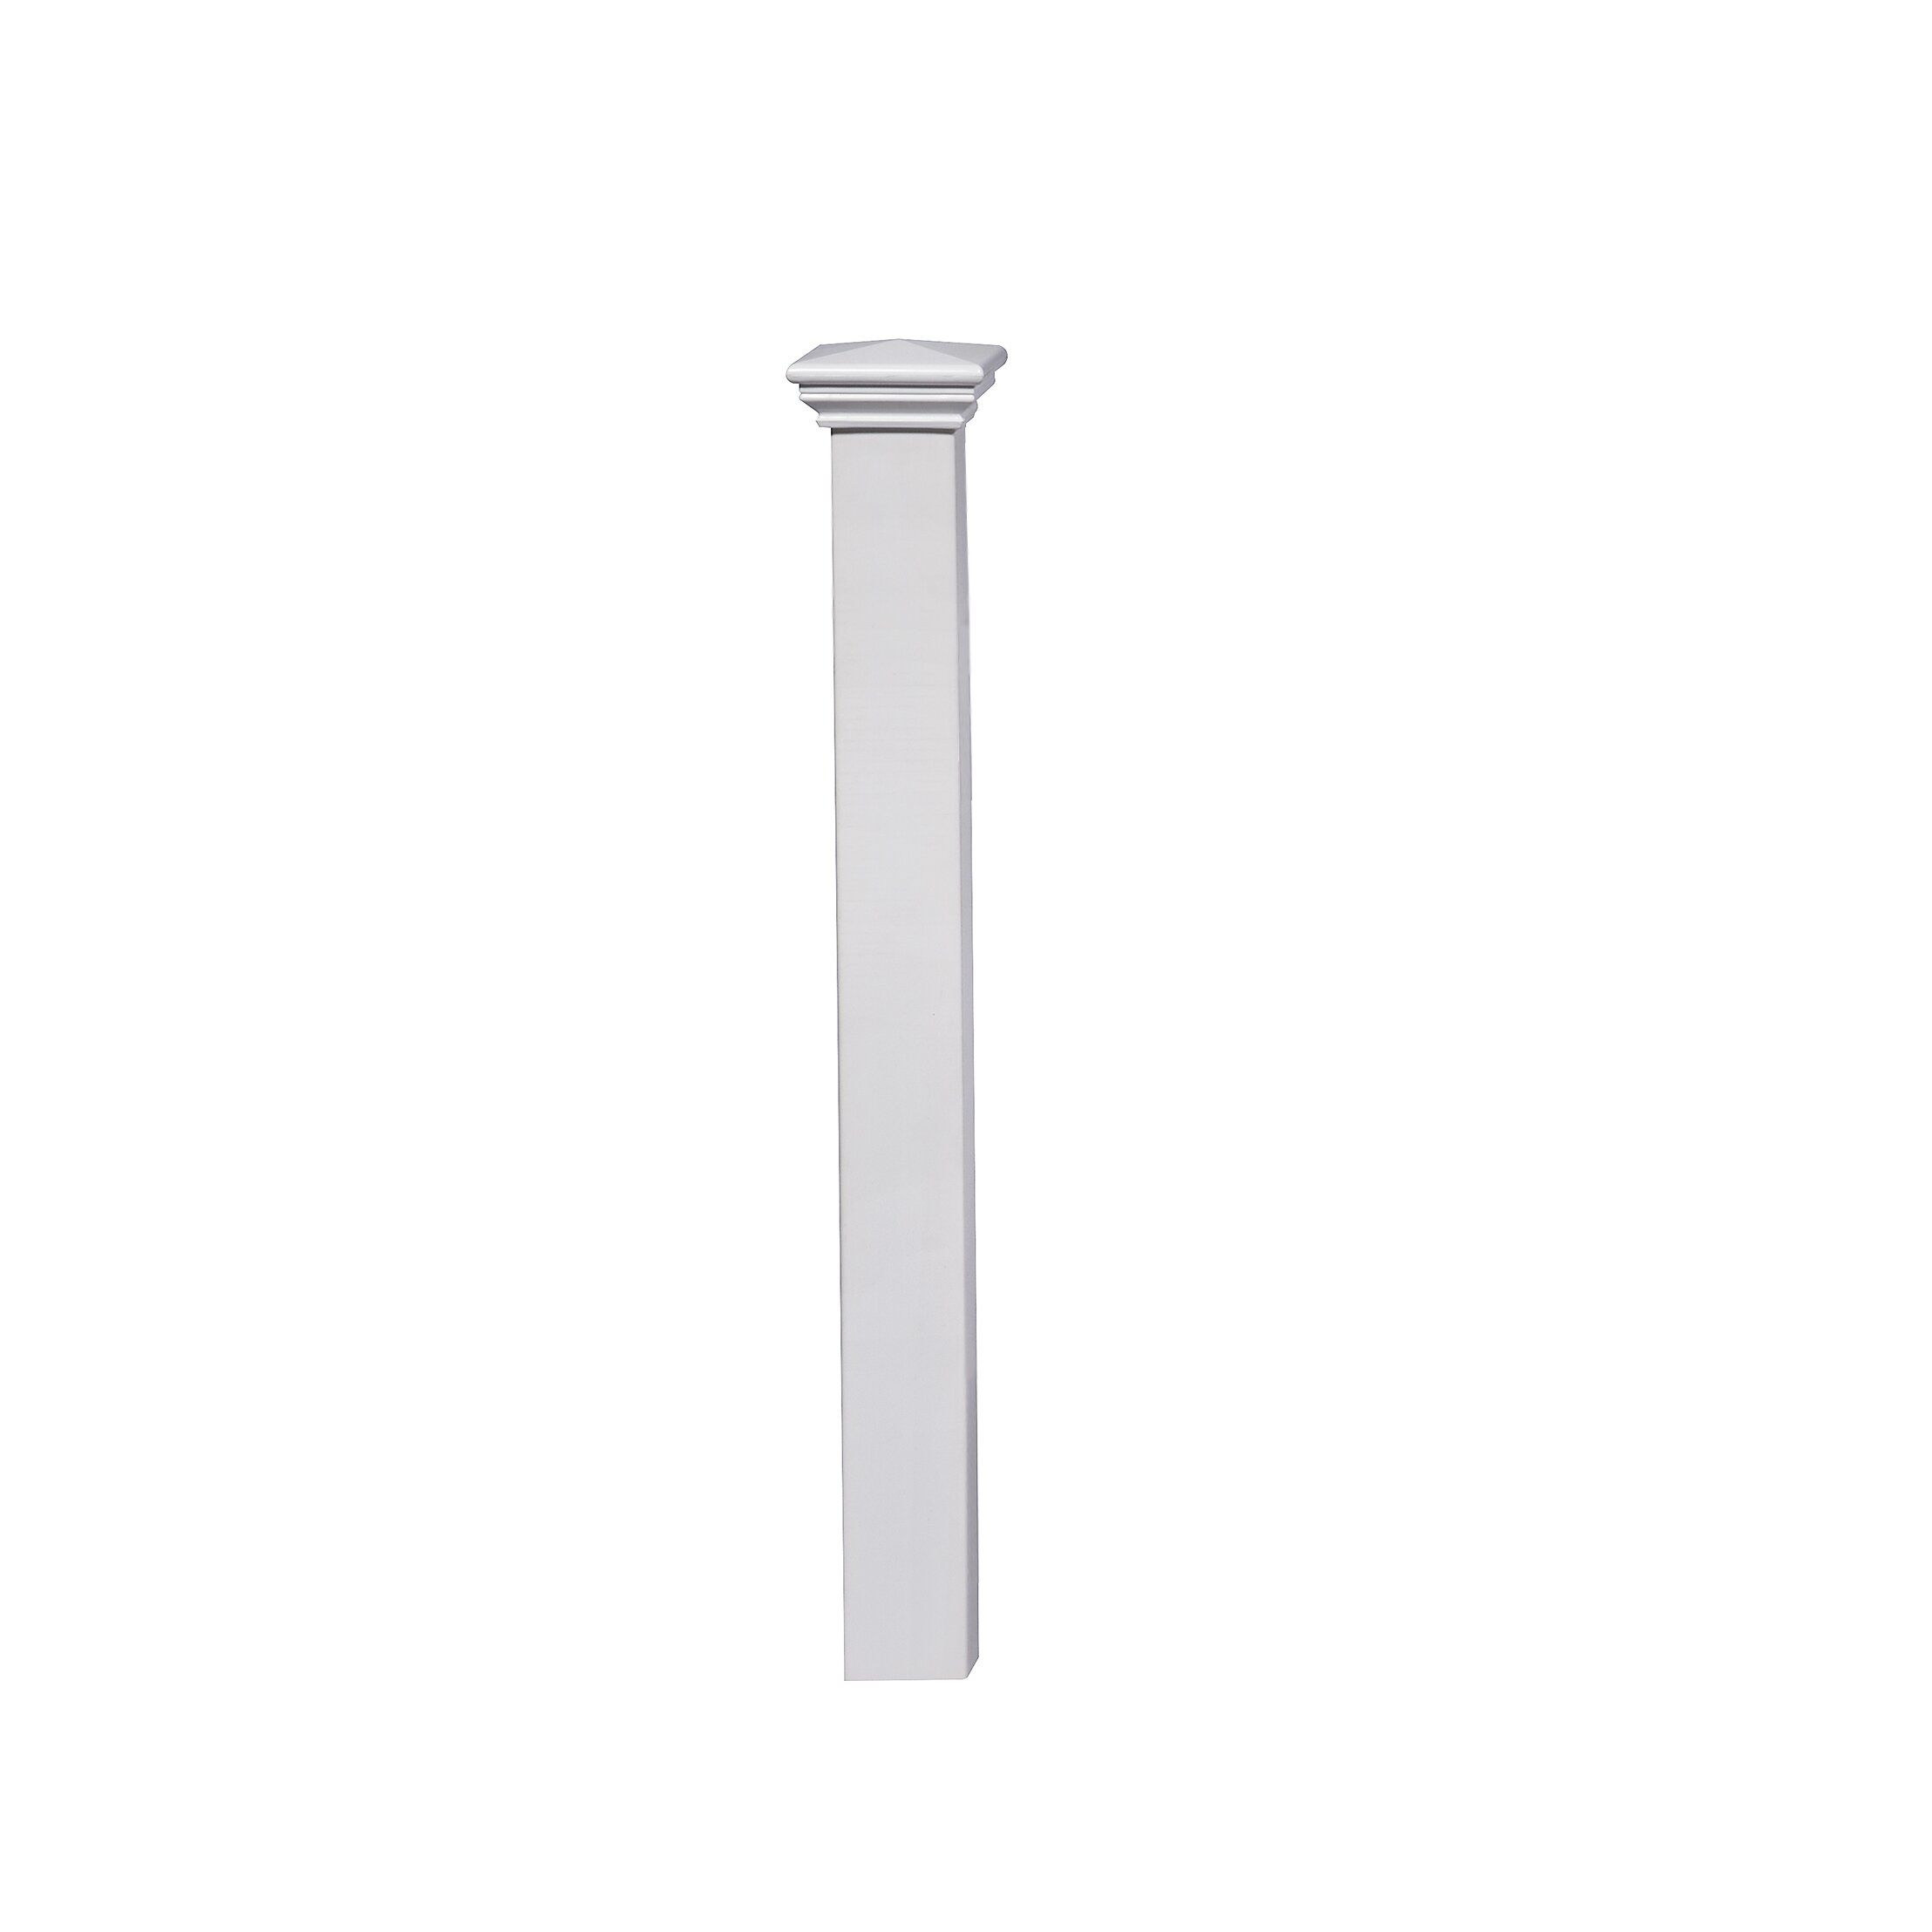 Zippity outdoor products newport vinyl fence post kit reviews wayfair - Vinyl railing reviews ...